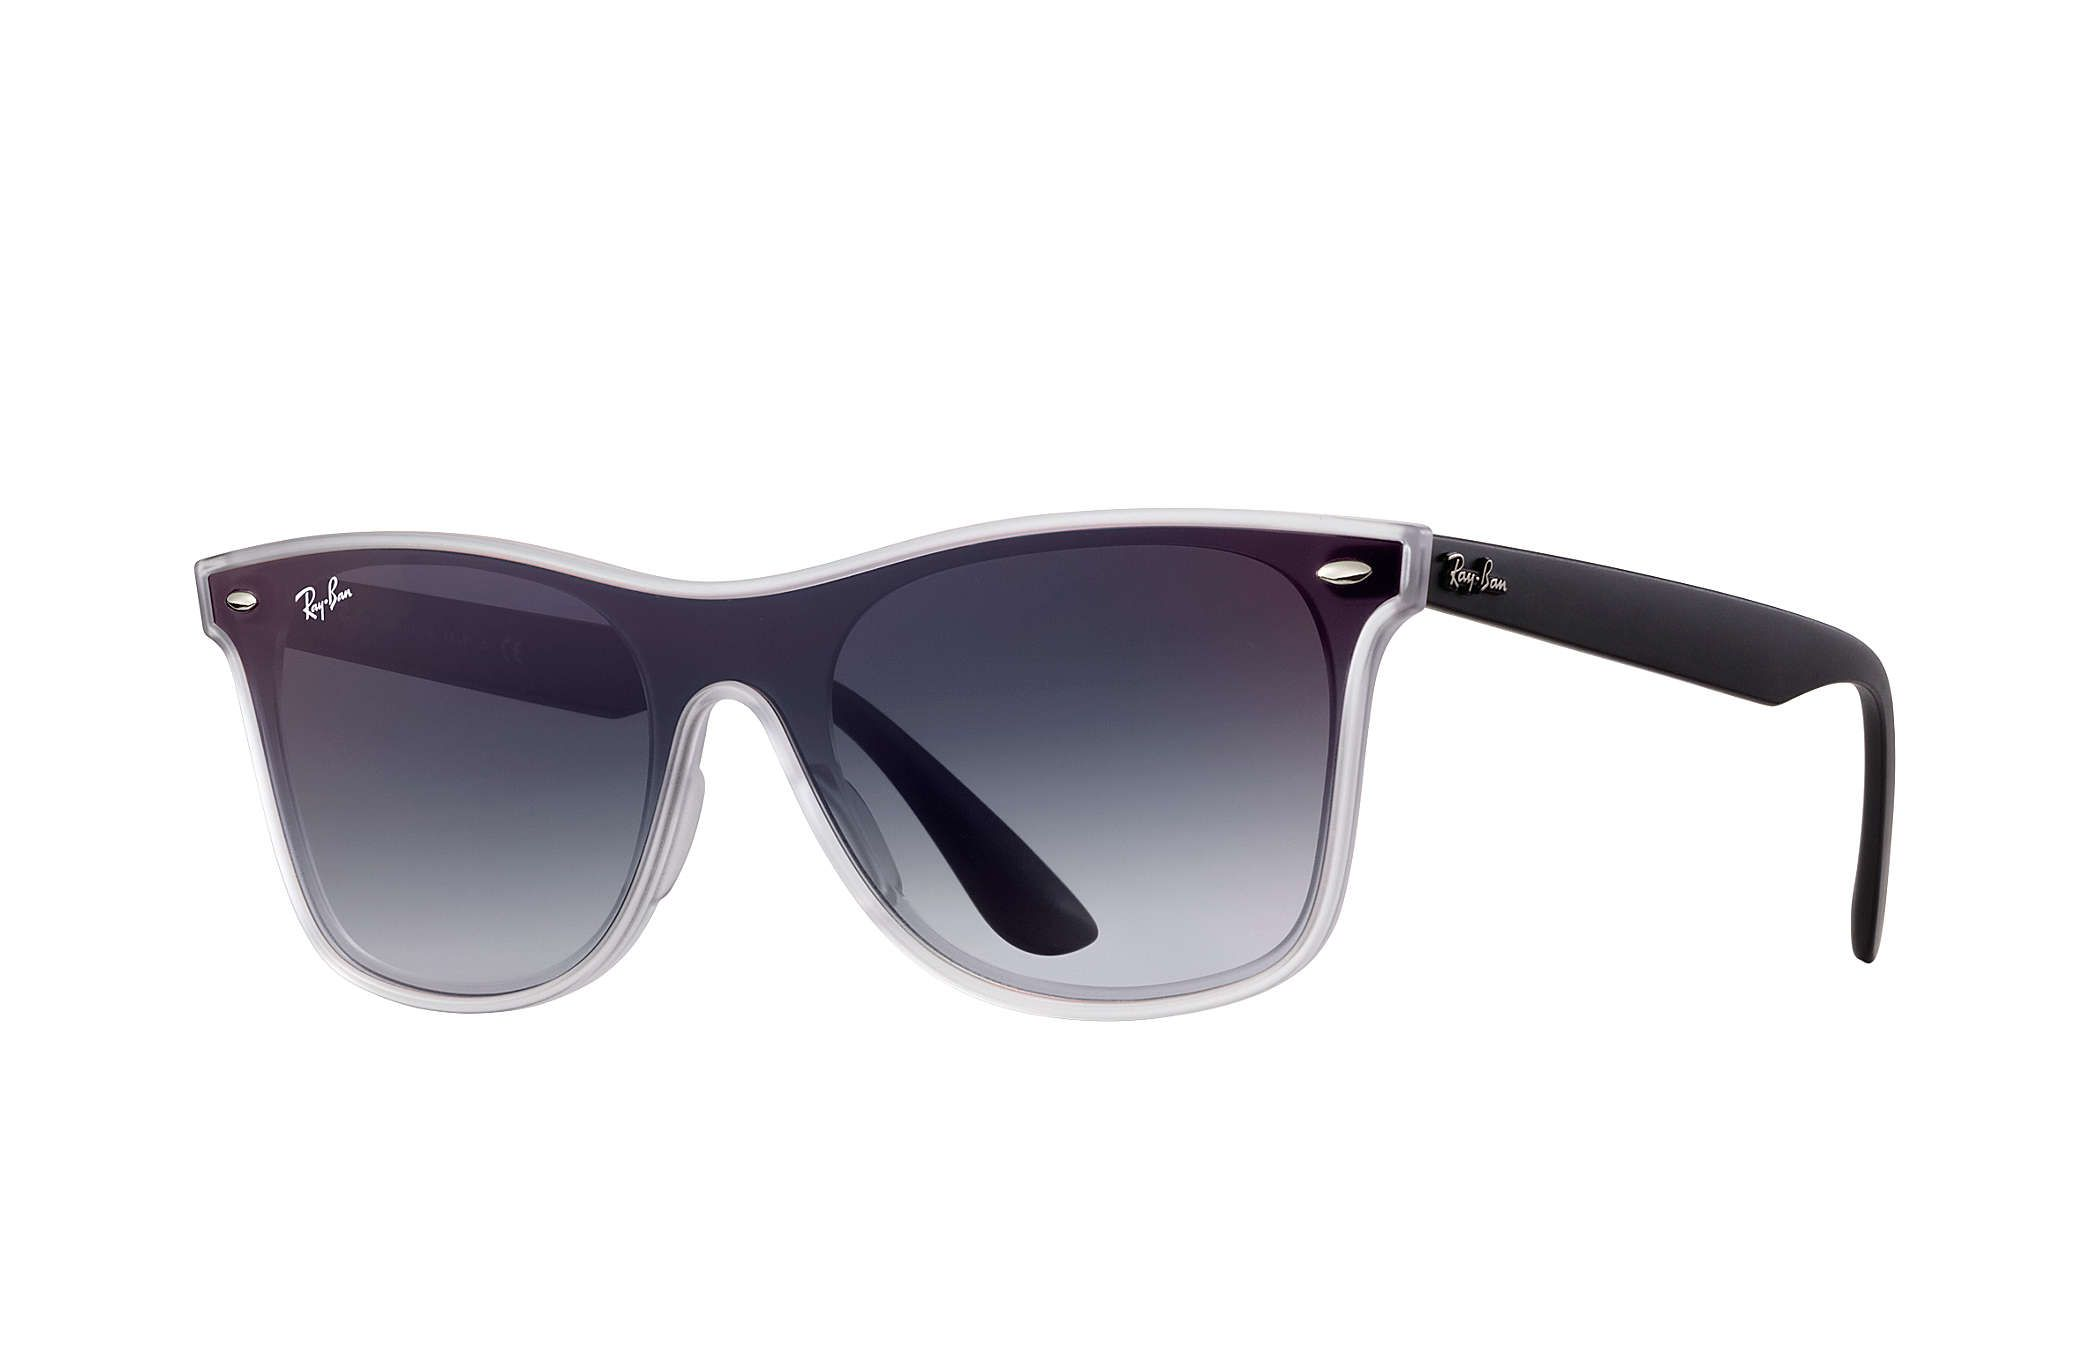 e1033cd0f3570 Check out the Blaze Wayfarer at ray-ban.com